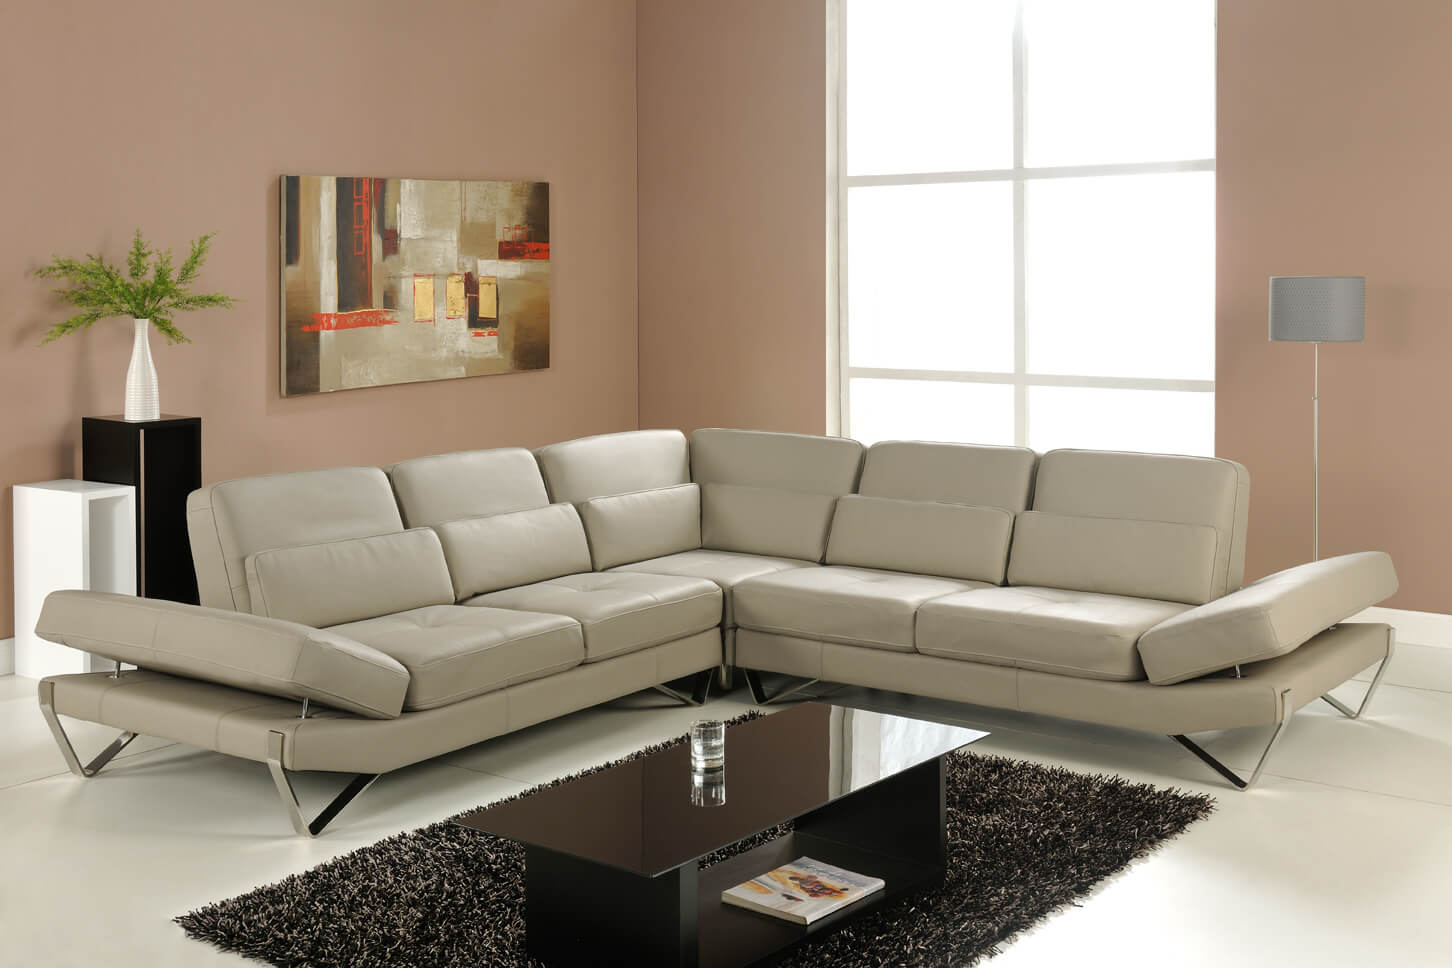 Bianca sectional sofa grey buy online at best price sohomod Sectional sofa prices